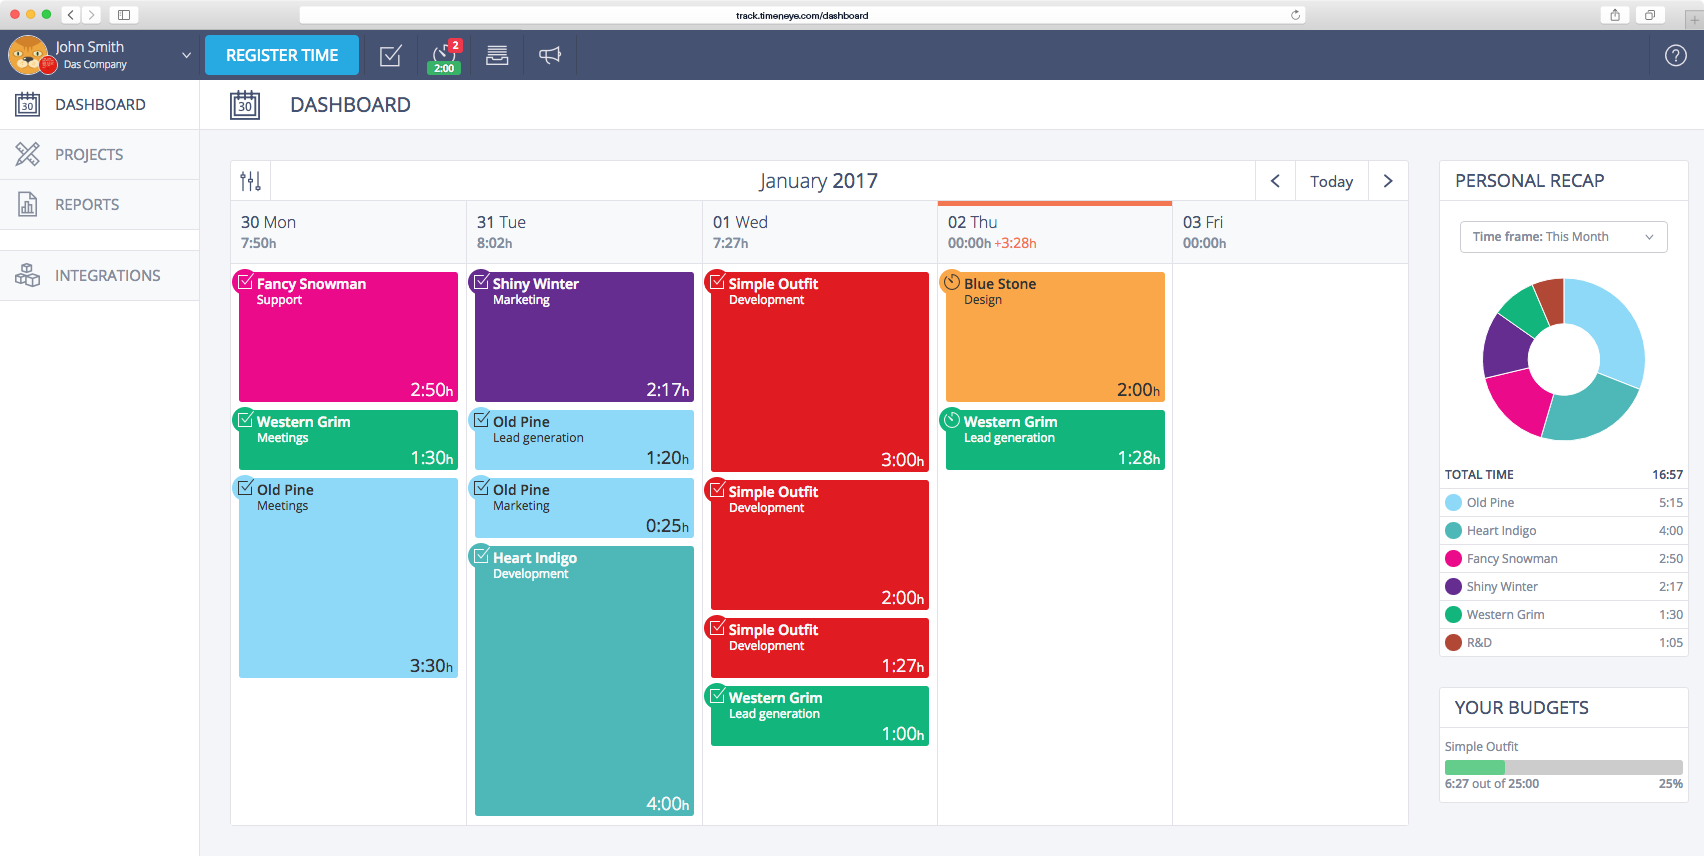 20 Best Time Management Apps for Small Business - Timeneye